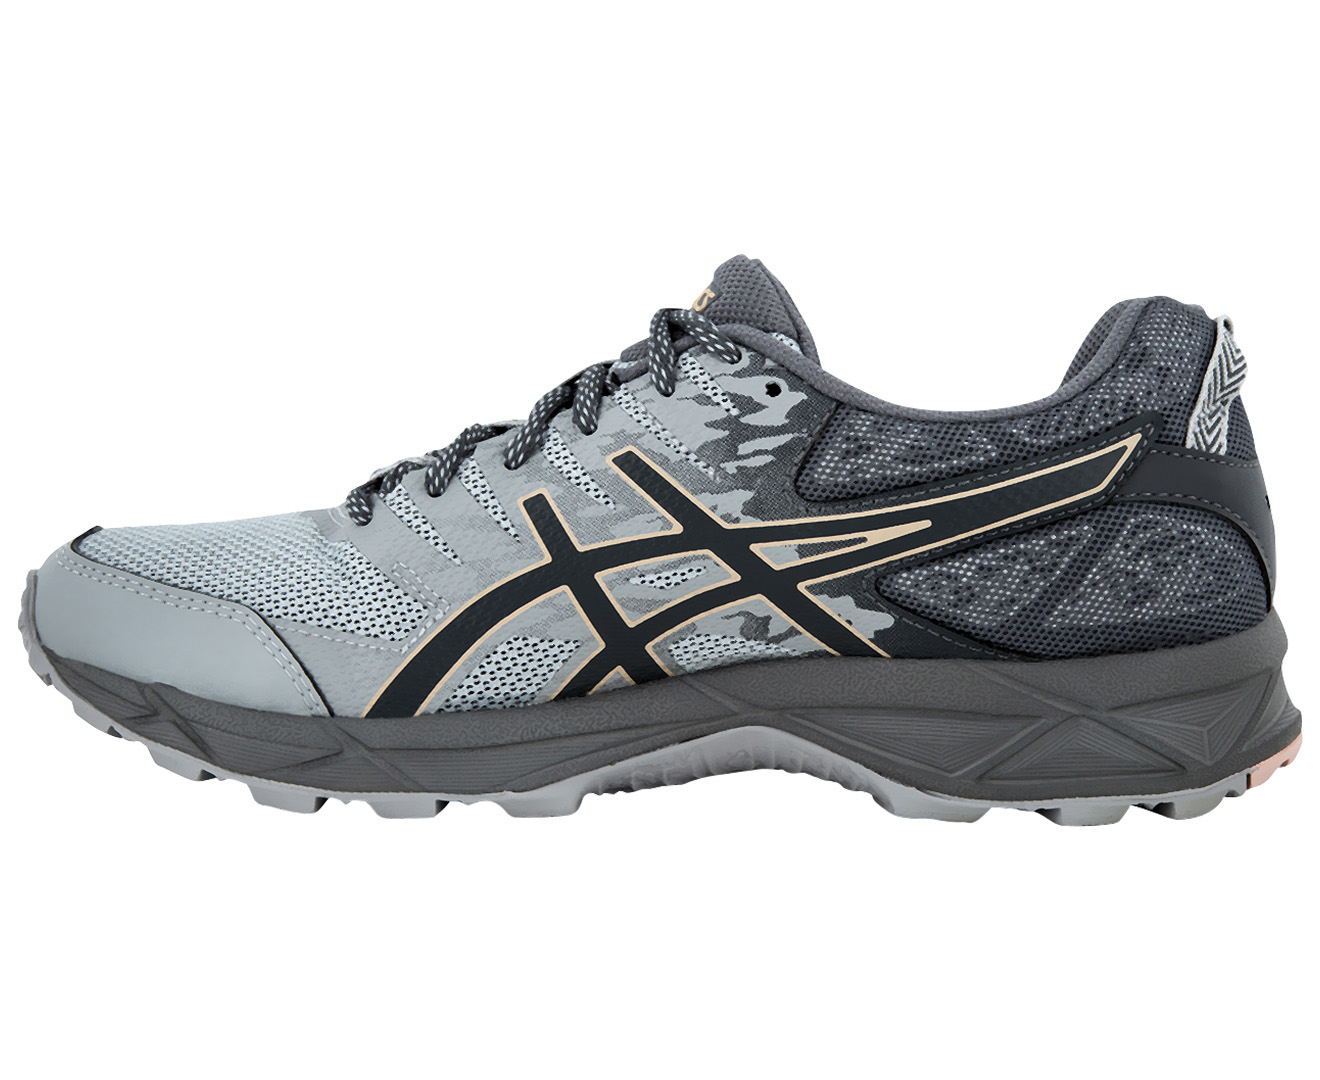 10034e7a0979 ASICS Women s GEL-Sonoma 3 Shoe - Mid Grey Carbon Evening Sand ...